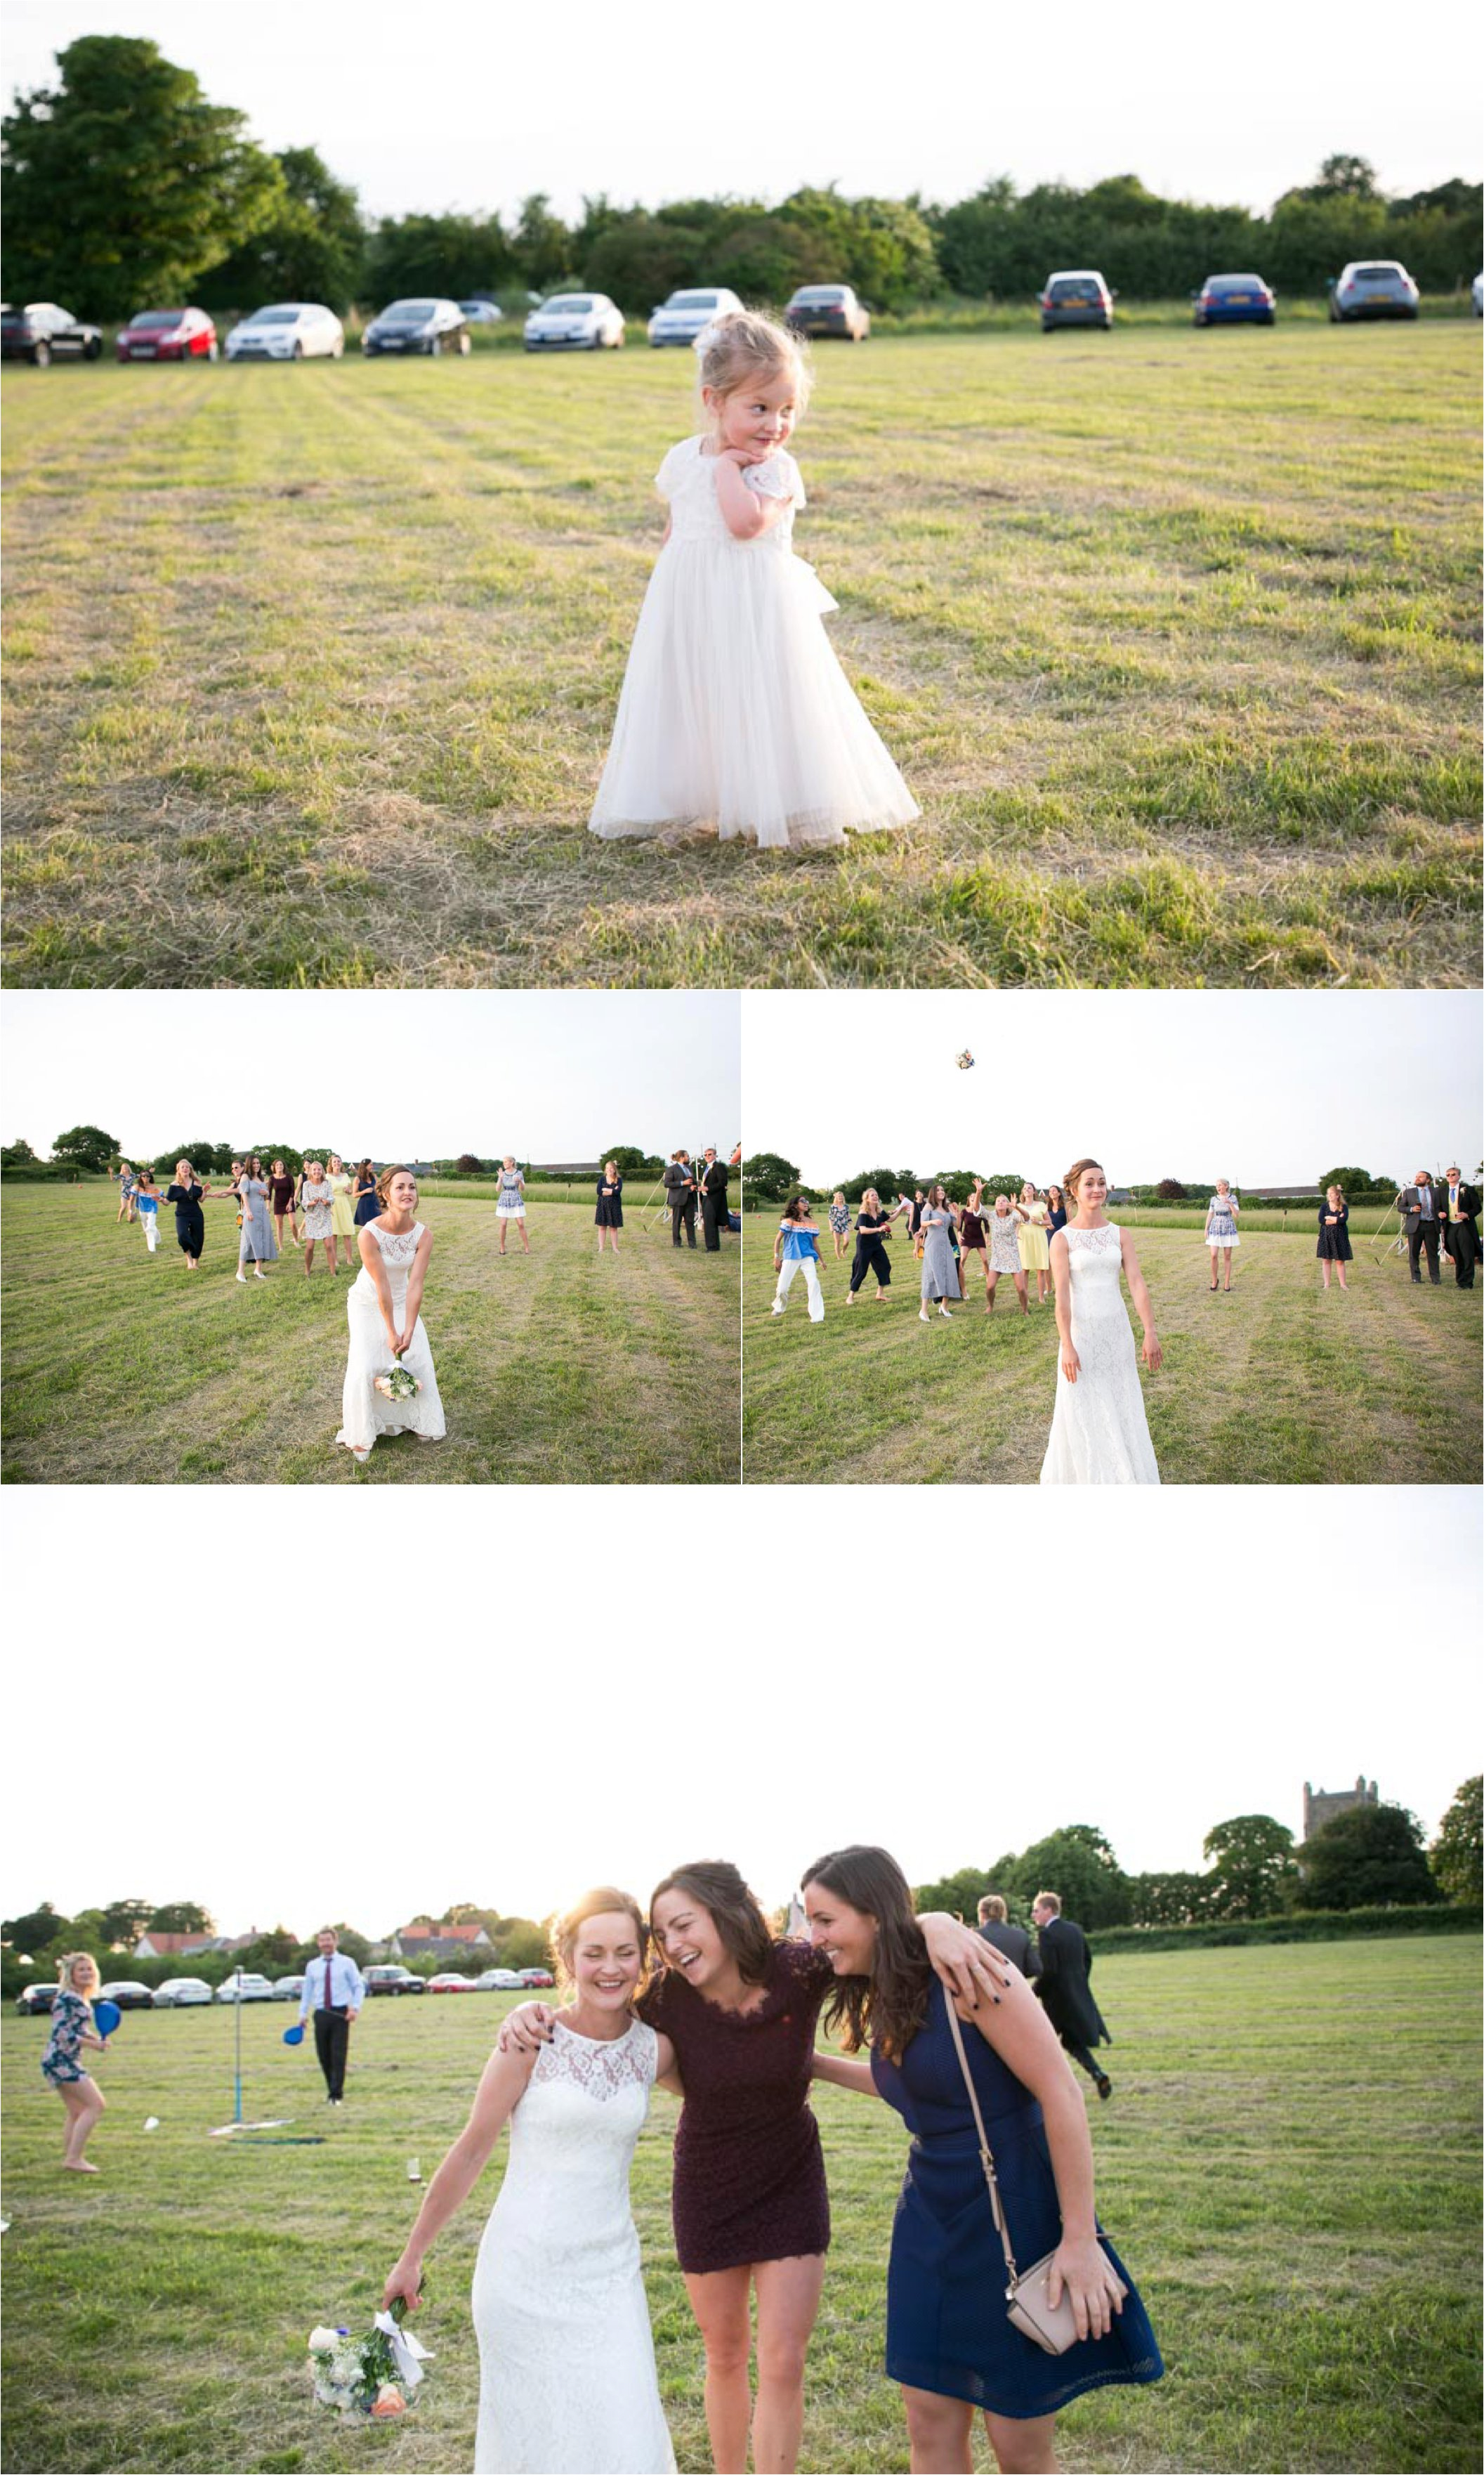 relaxed wedding photography aldeburgh suffolk